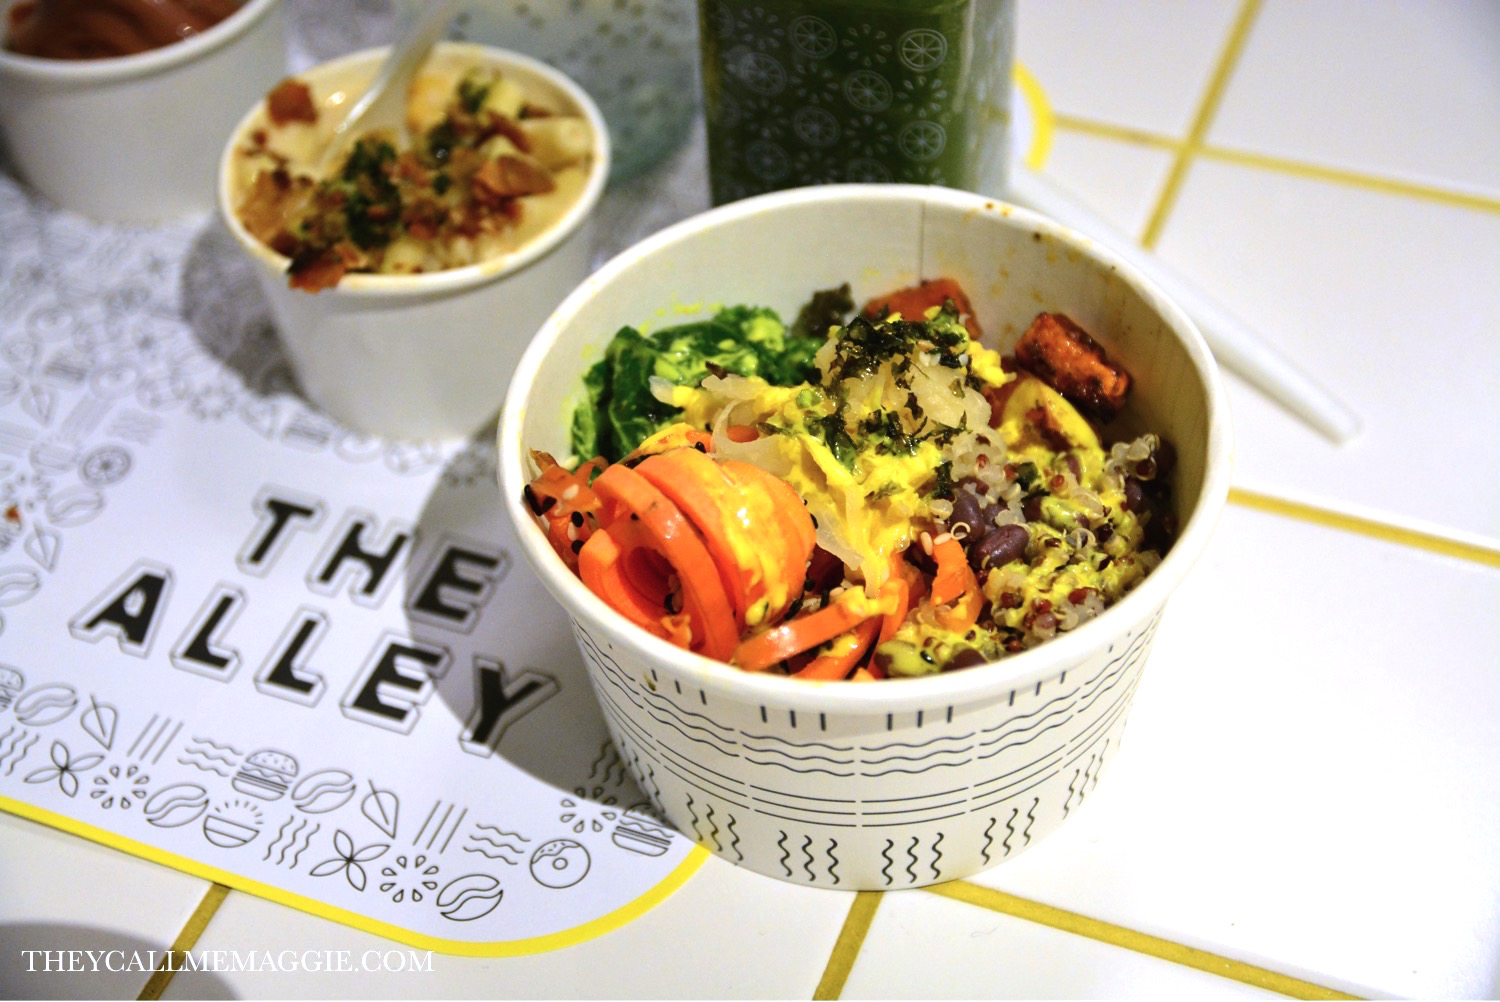 The Alley Signature Macro Bowl - quinoa medley with sauteed kale, roast sweet potato, adzuki beans, carrot ribbons, sesame seeds, crunchy nori flakes, pickled vegetables and a tumeric tahini dressing.